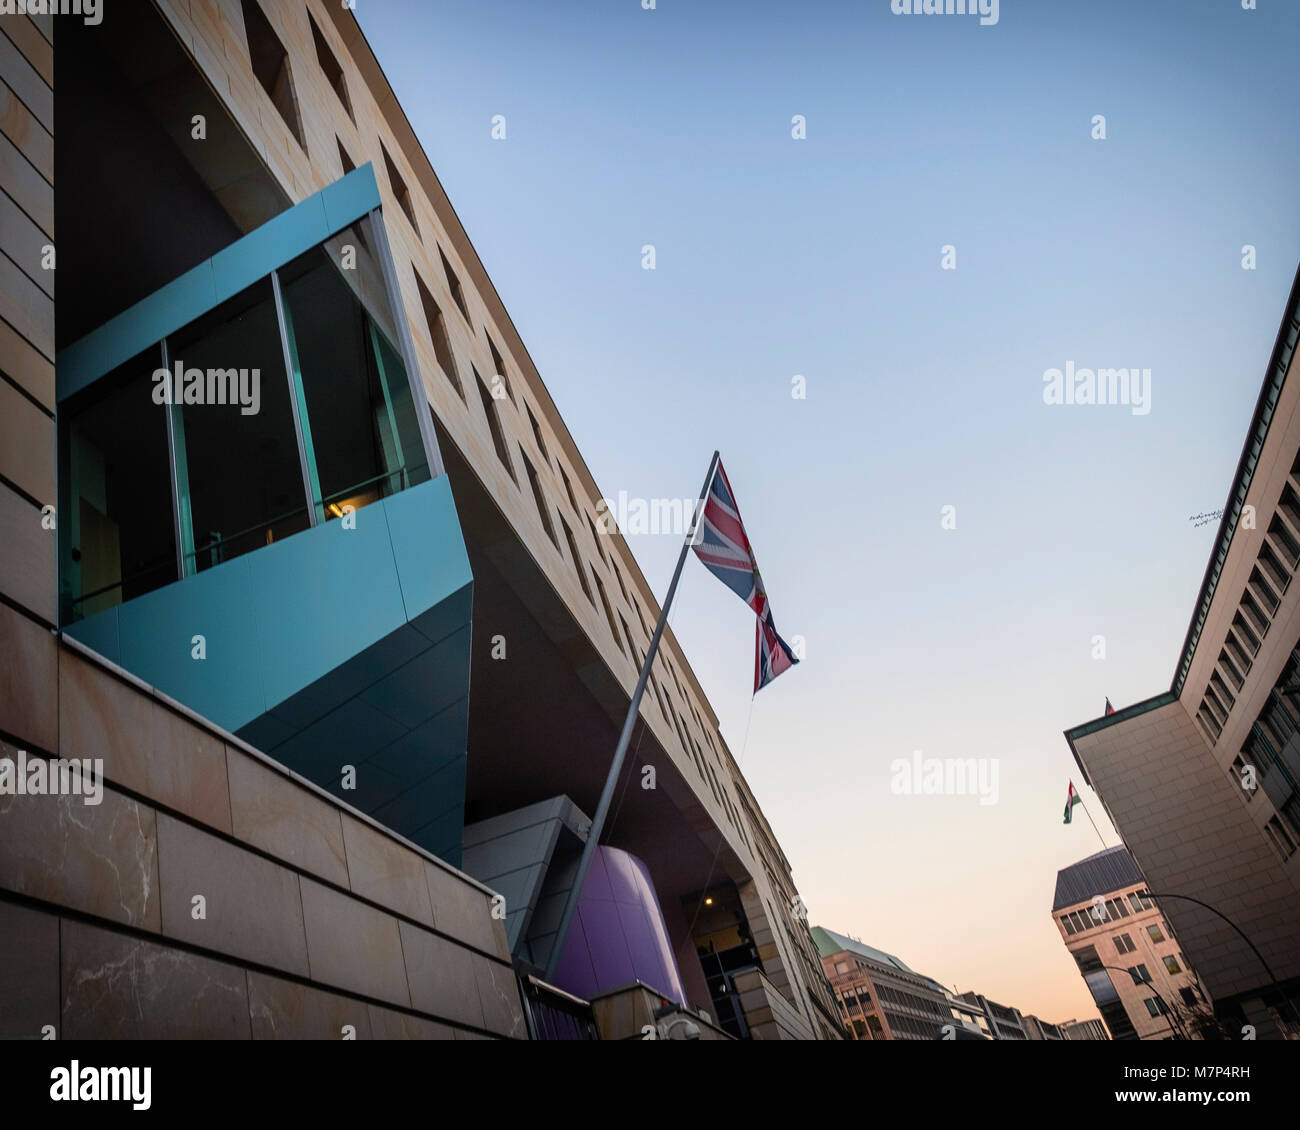 Berlin,Mitte,British Embassy building, exterior & facade,Union flag against blue sky - Stock Image